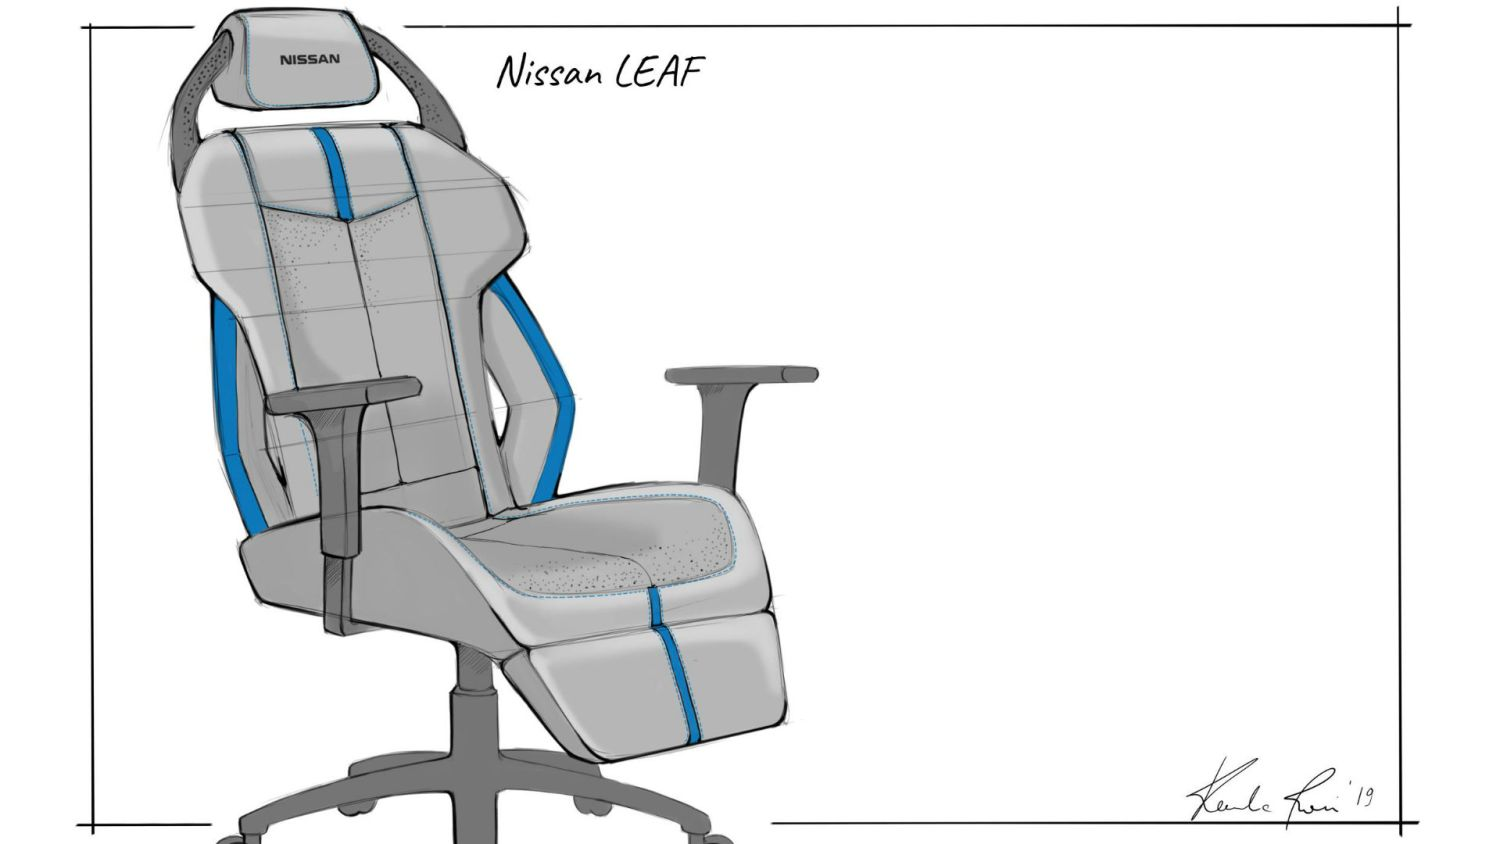 Nissan Leaf gaming chair